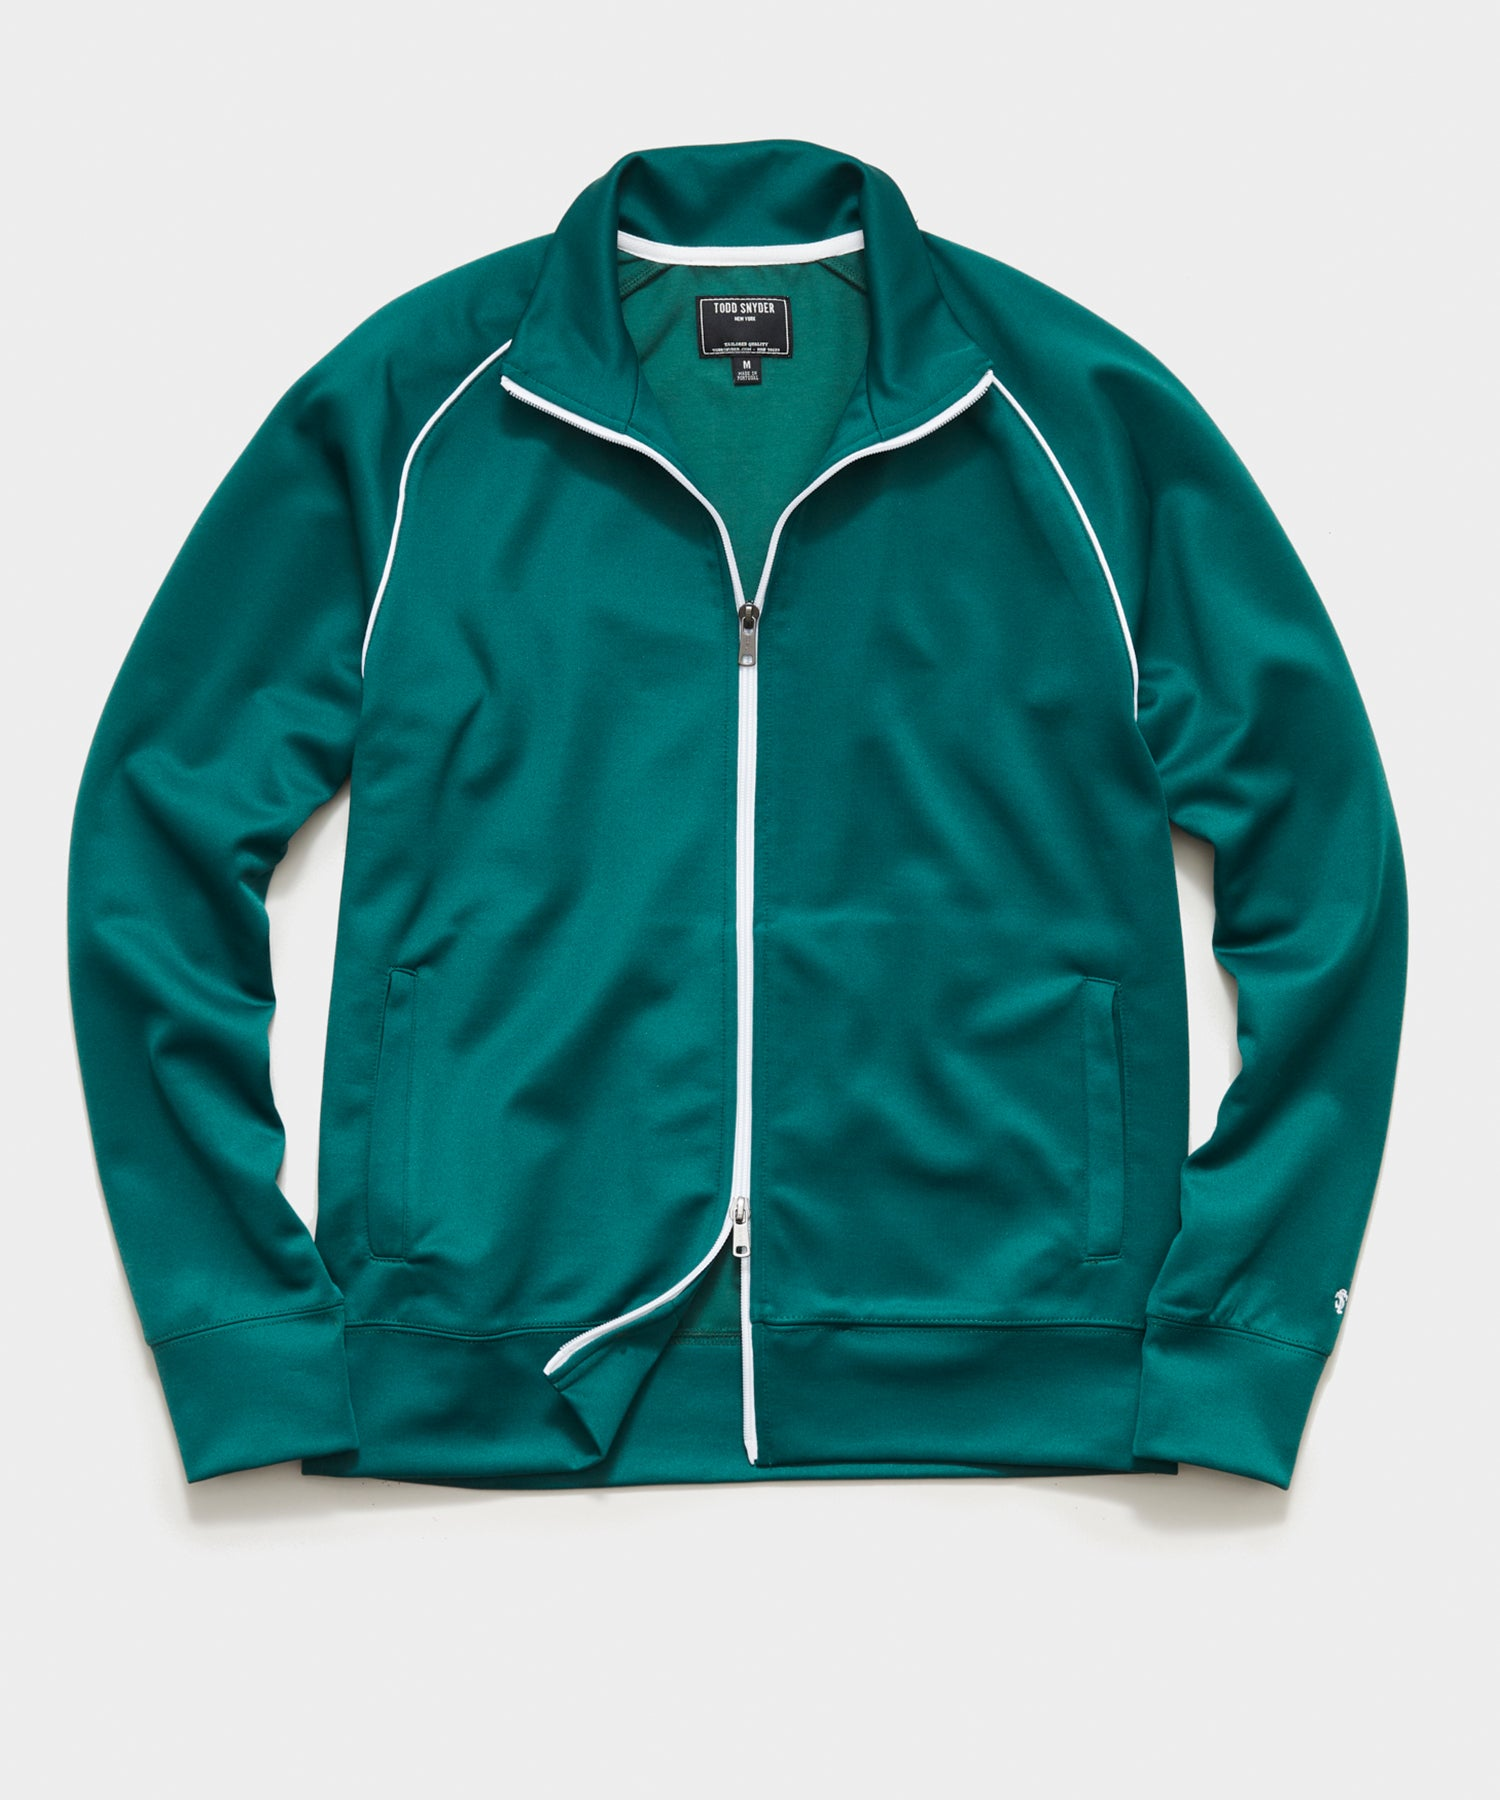 Knit Track Jacket in Green